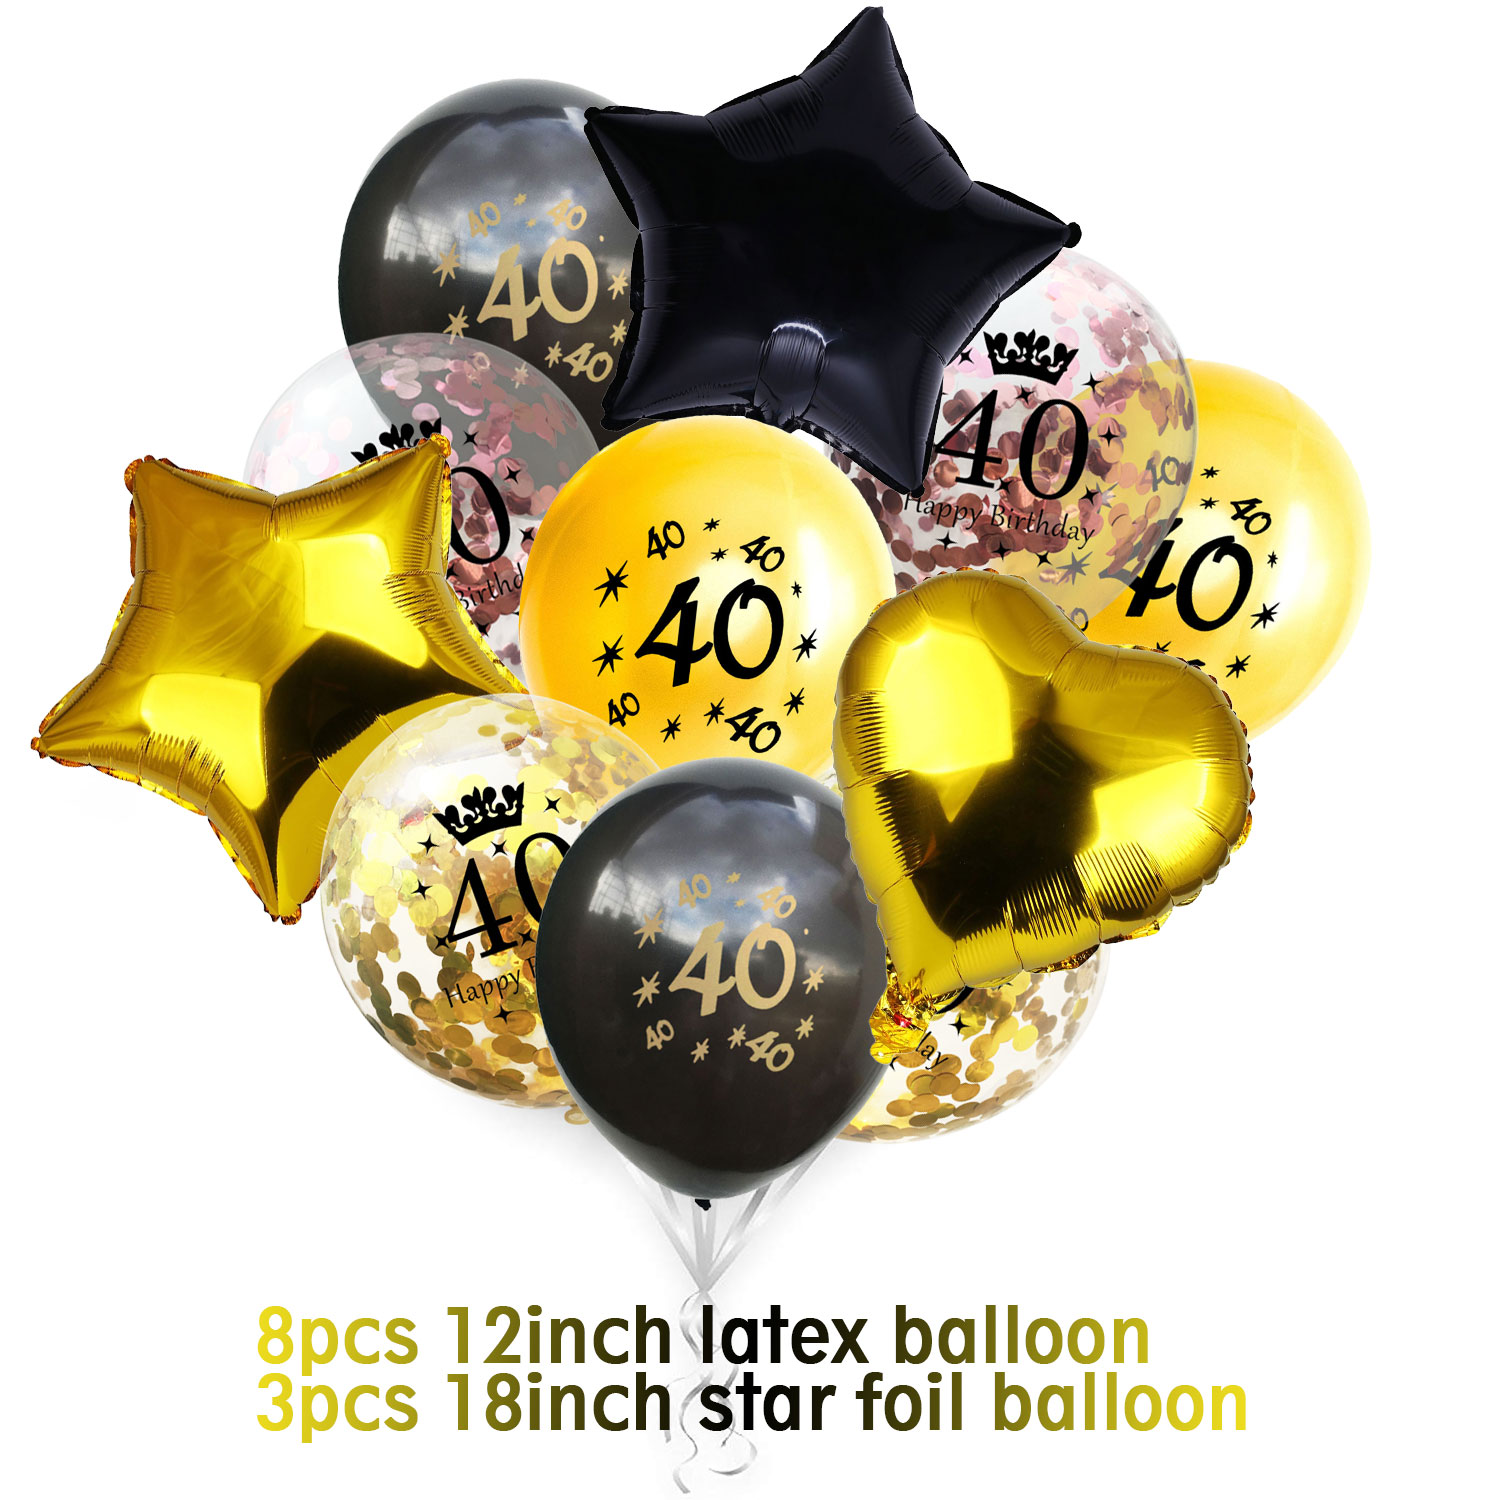 Nameblack Gold Birthday Balloon Kit 14pcs 12inch Confetti 24pcs Latex 33pcs 18inch Star Heart Foil